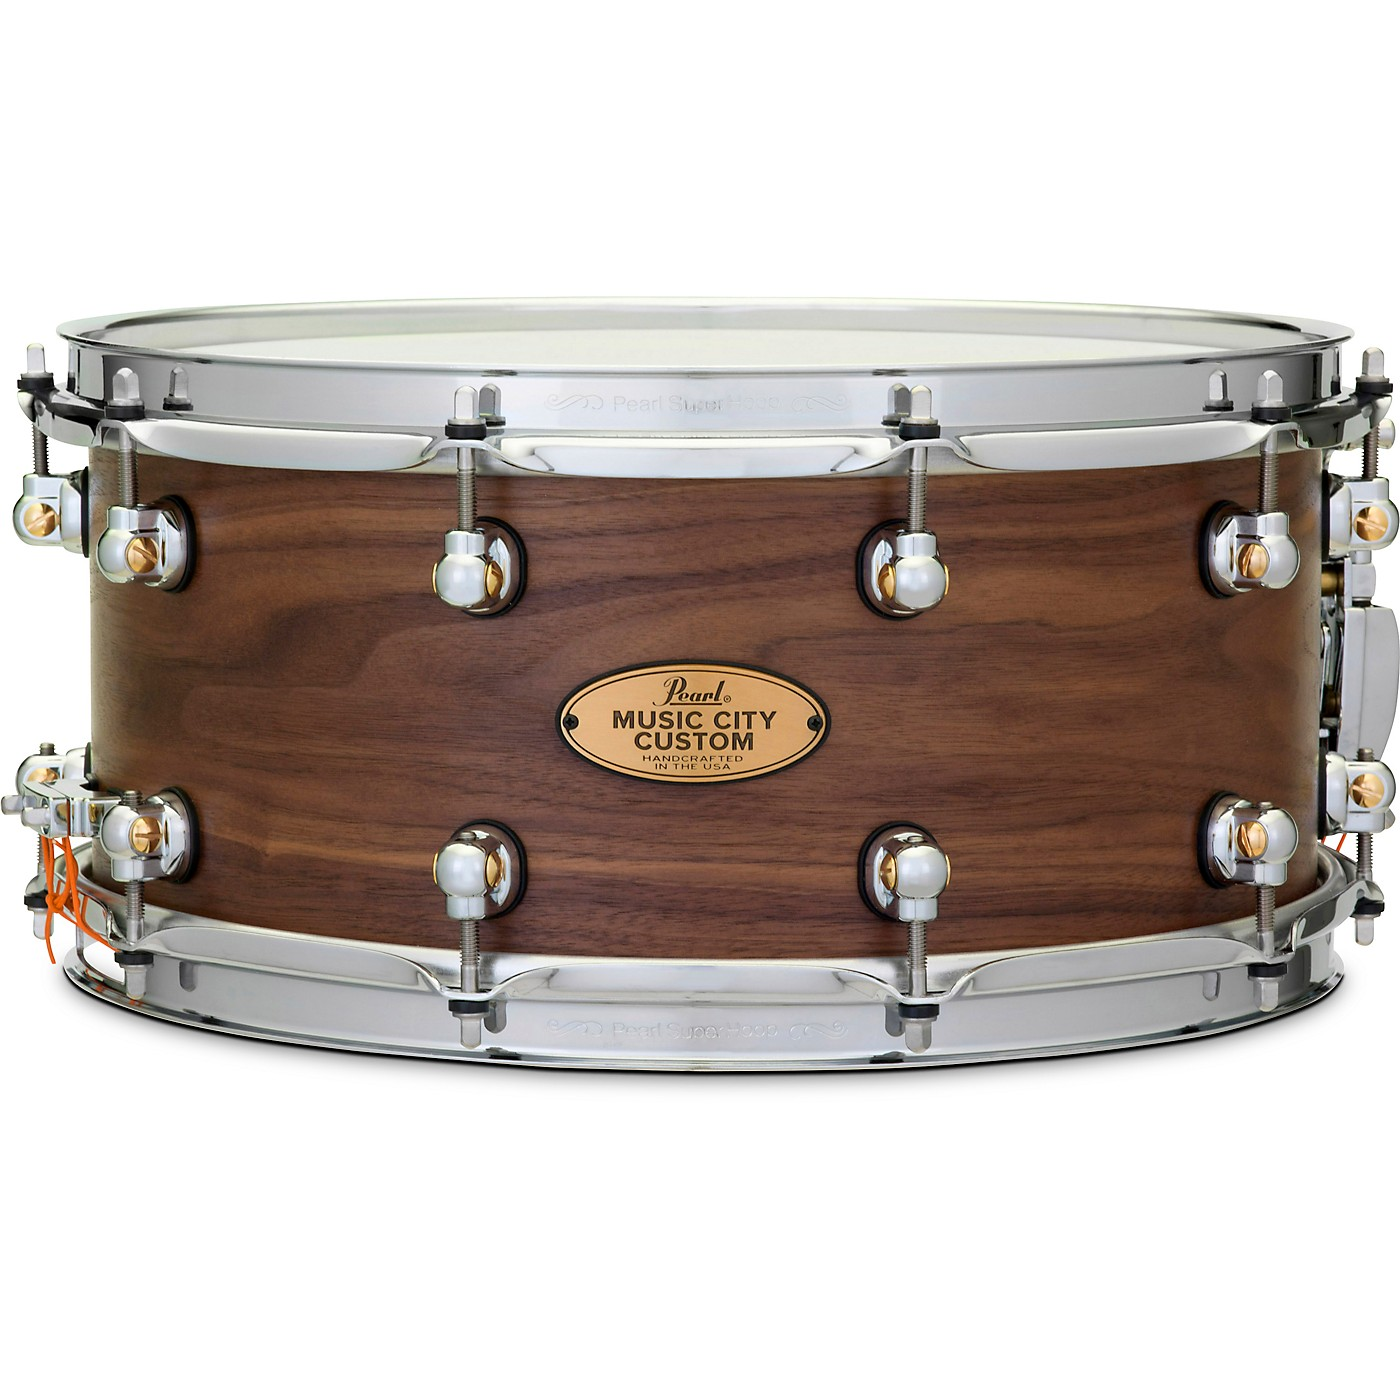 Pearl Music City Custom Solid Shell Snare Walnut in Hand-Rubbed Natural Finish thumbnail